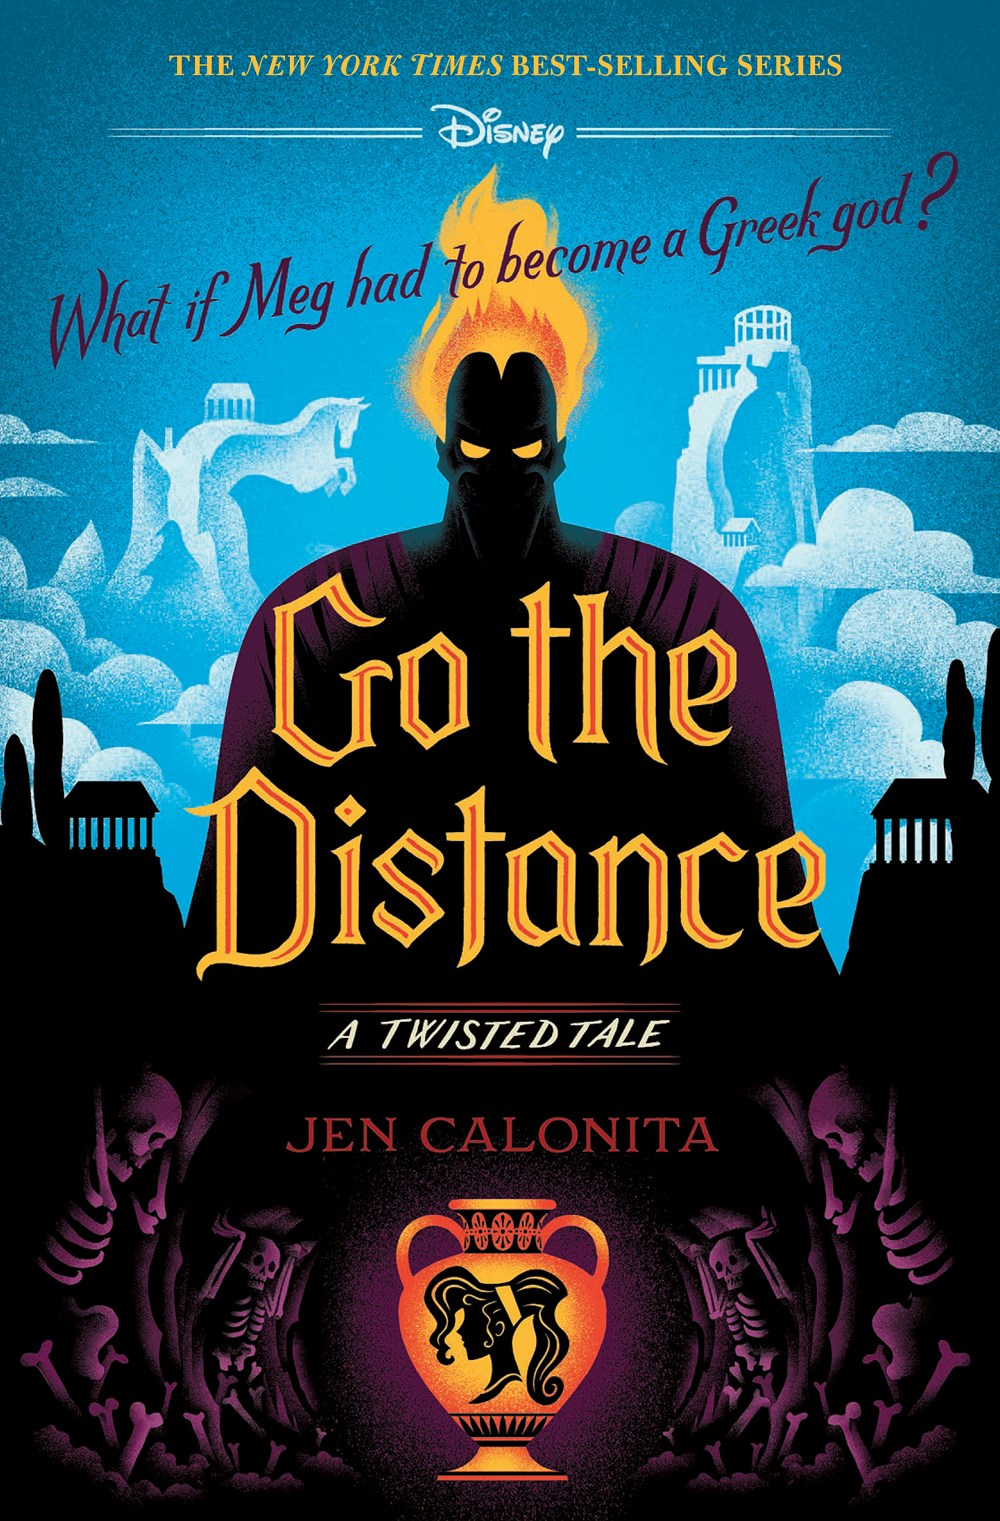 Go the Distance by Jen Calonita